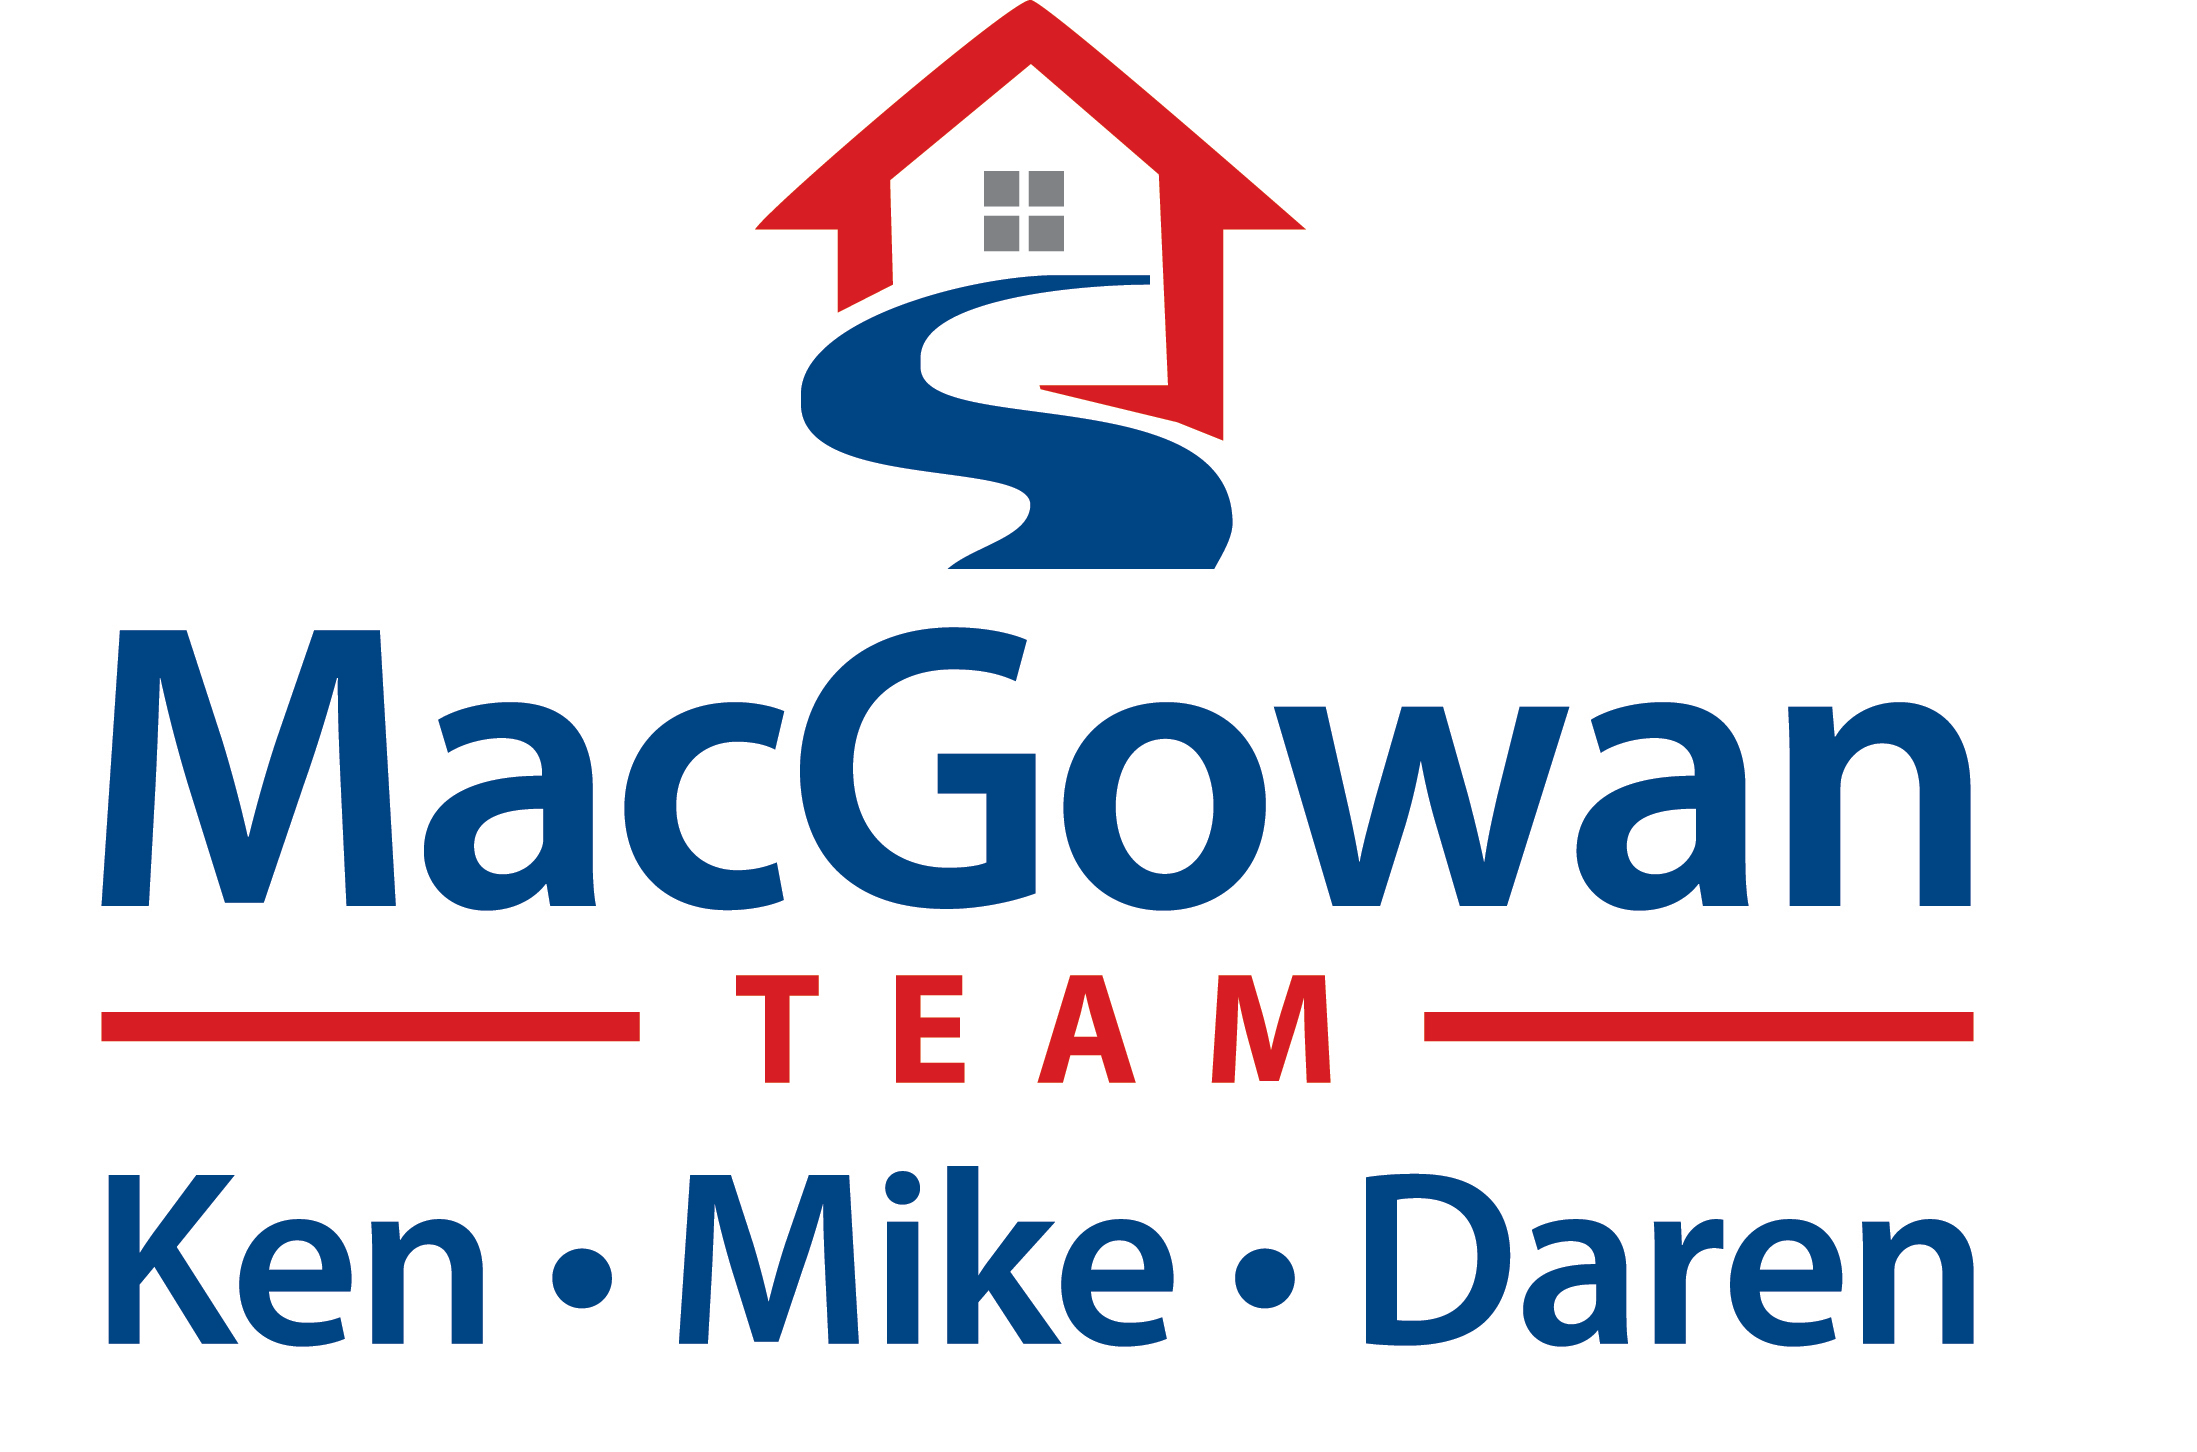 MacGowan Team - Ken Mike Daren - MacGowan Team - Ken Mike Daren